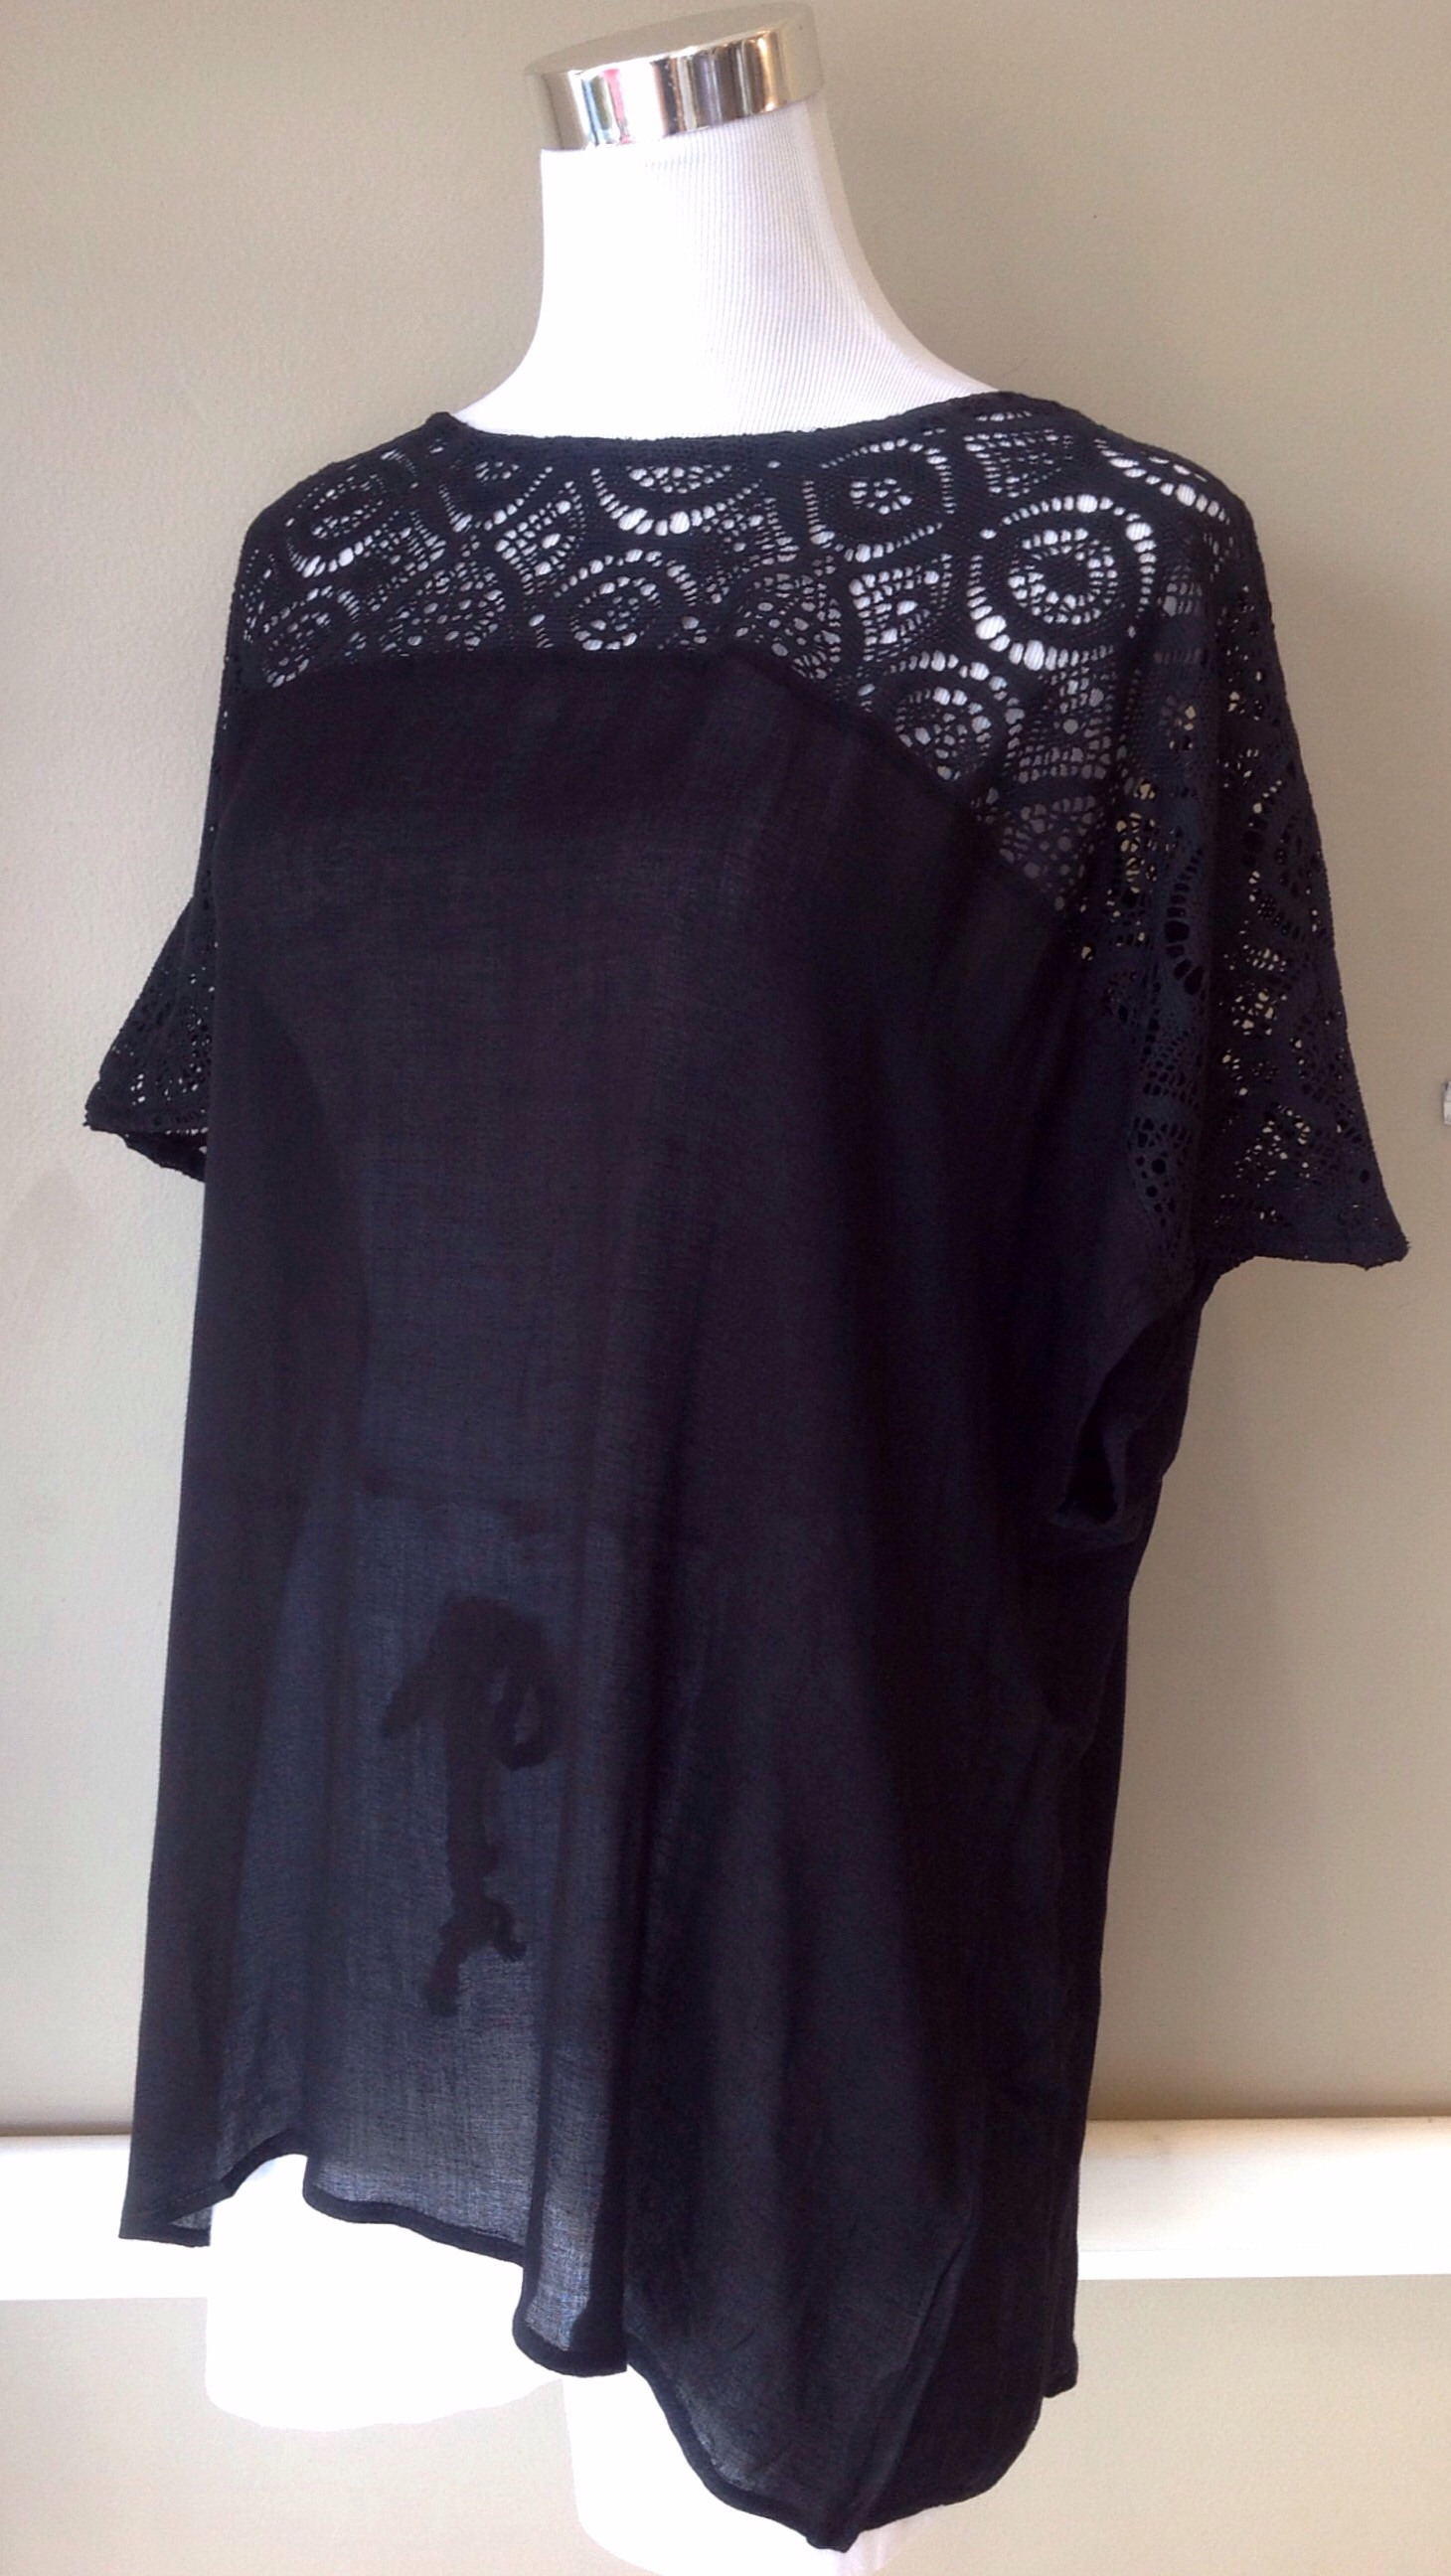 Black lightweight blouse with lace yoke, $38